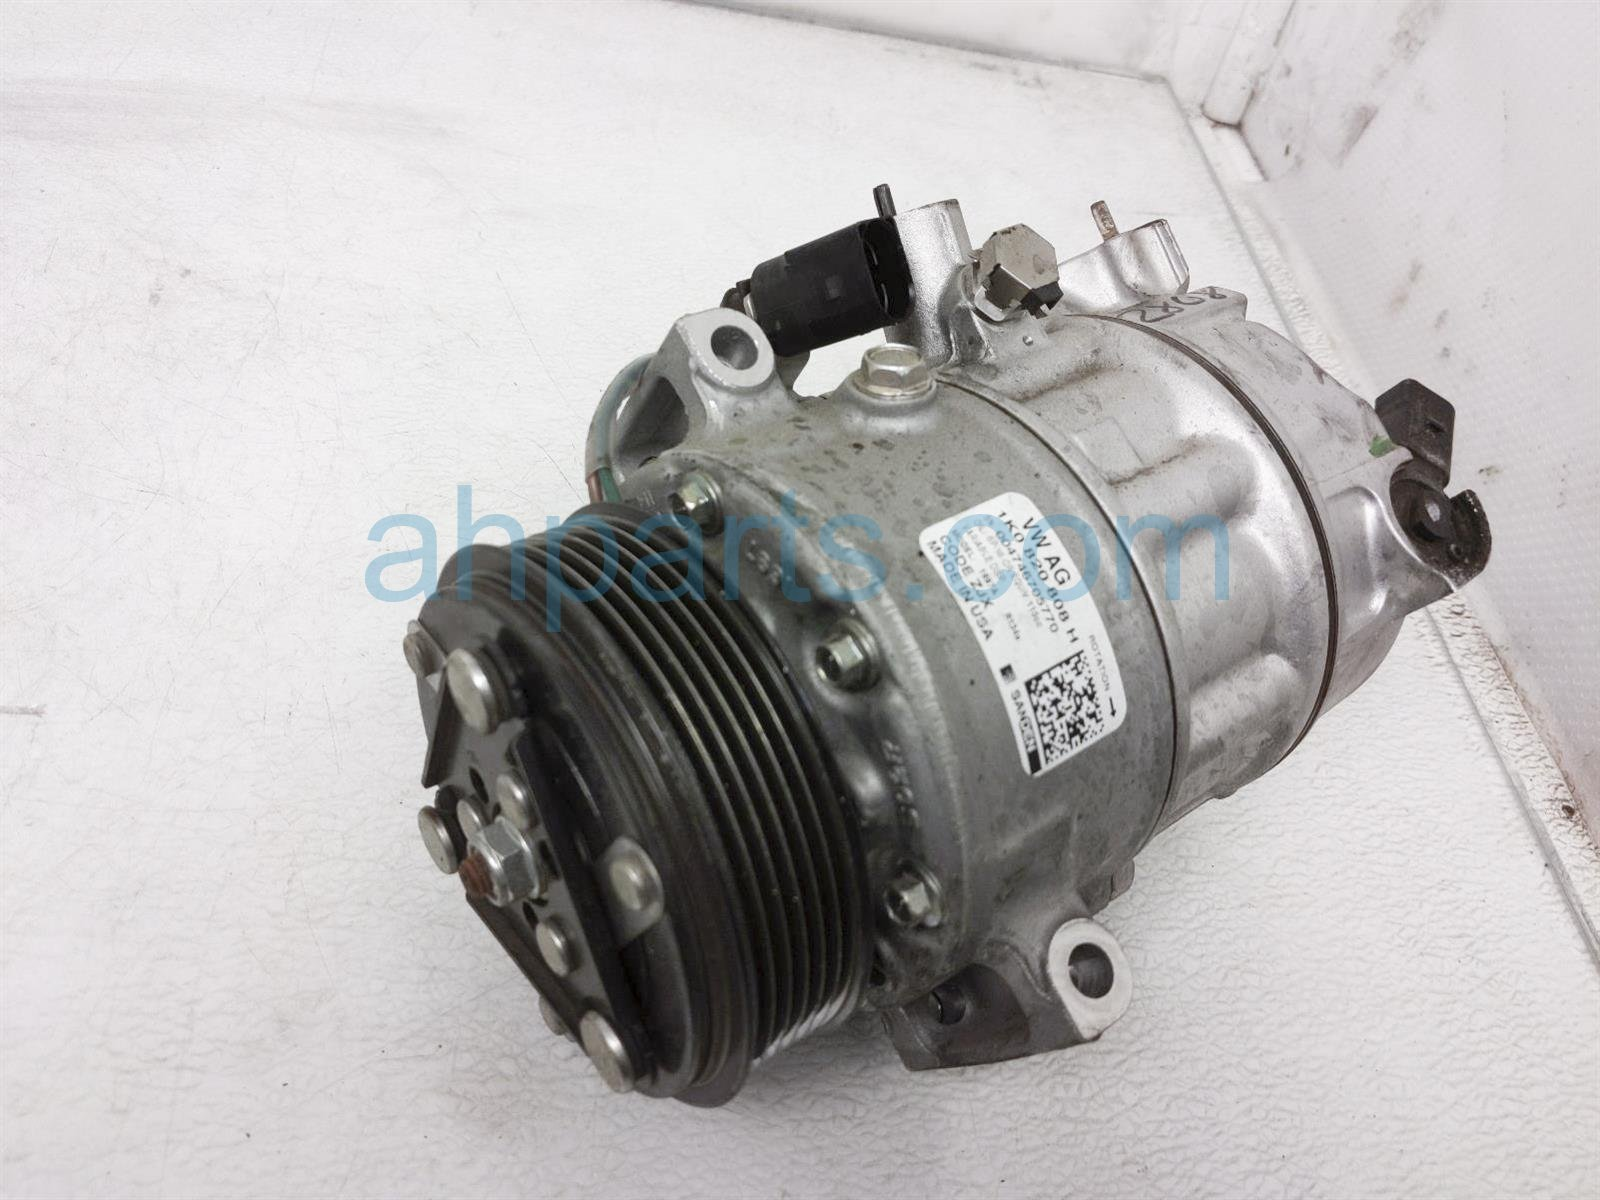 2018 Volkswagen Jetta Air + Clutch Ac Pump / Compressor 1K0 820 808 H Replacement